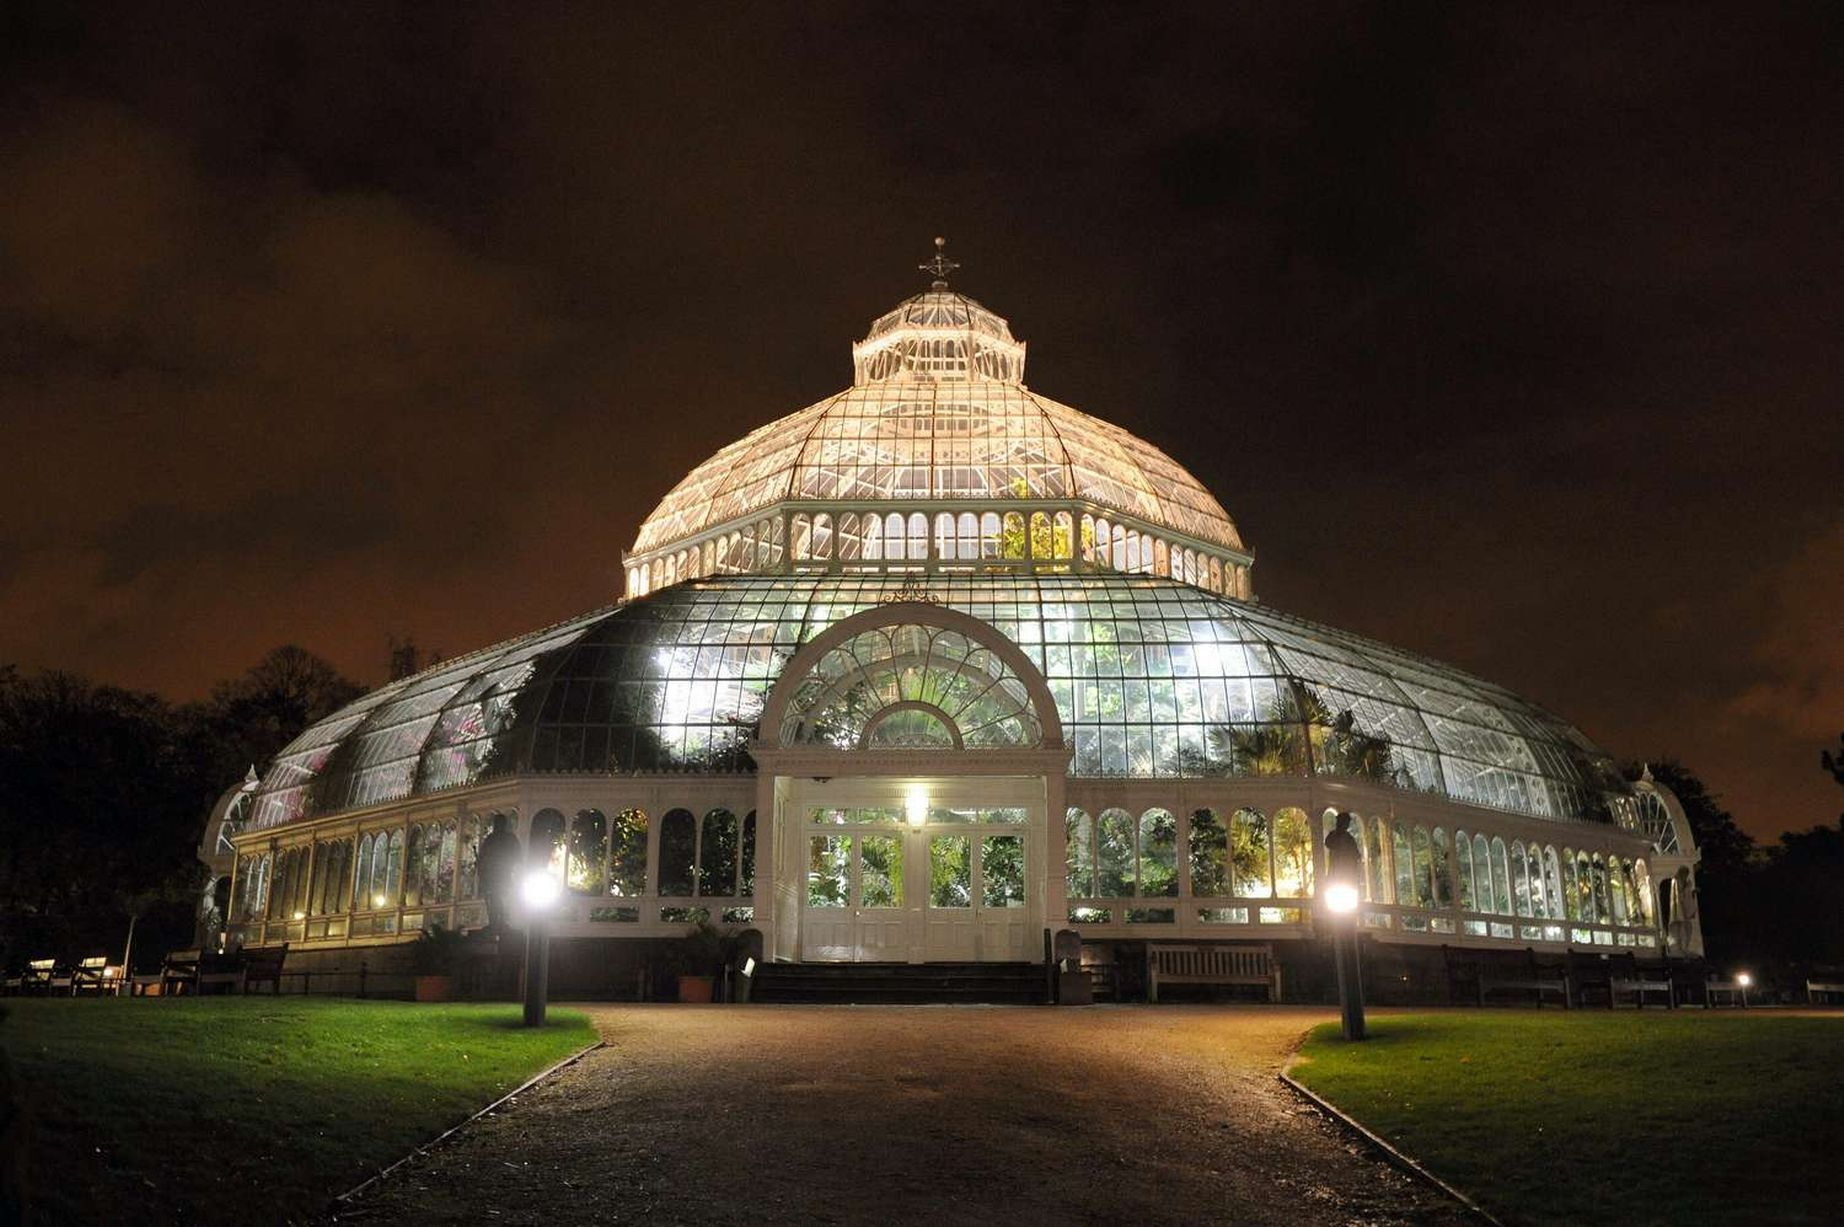 candlelight-concerts-palm-house-liverpool